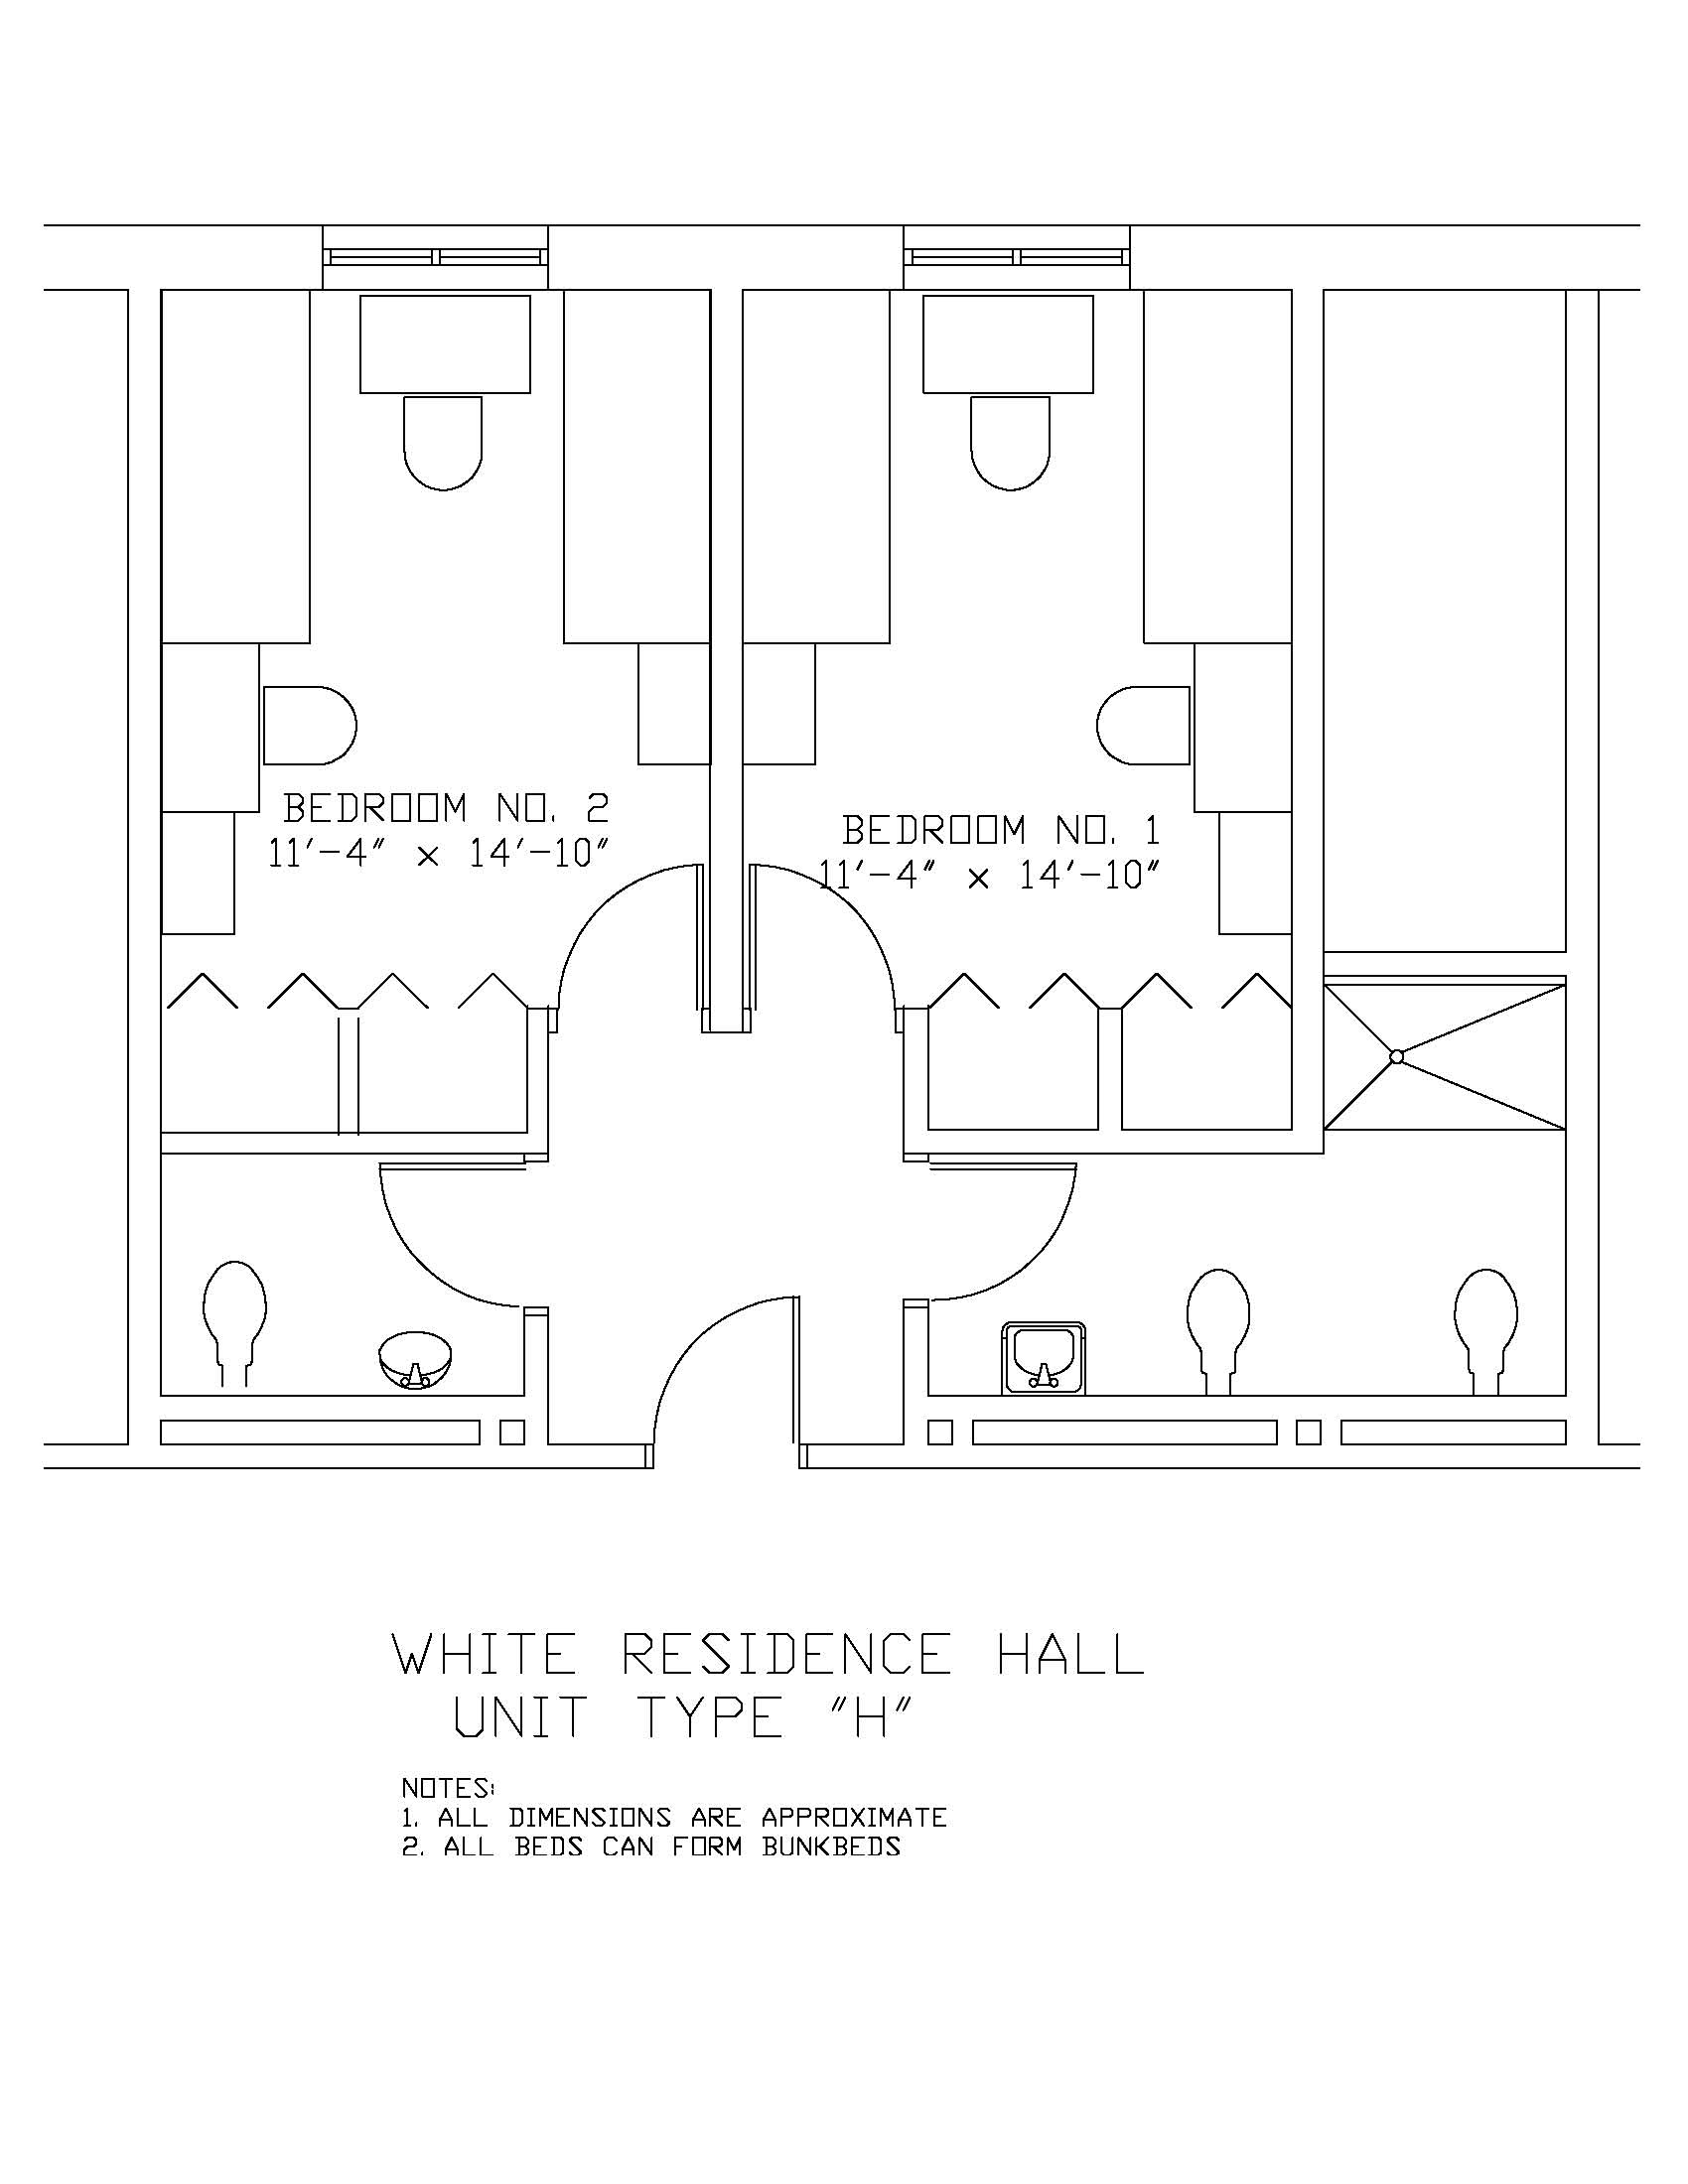 James S. White Hall: Type H